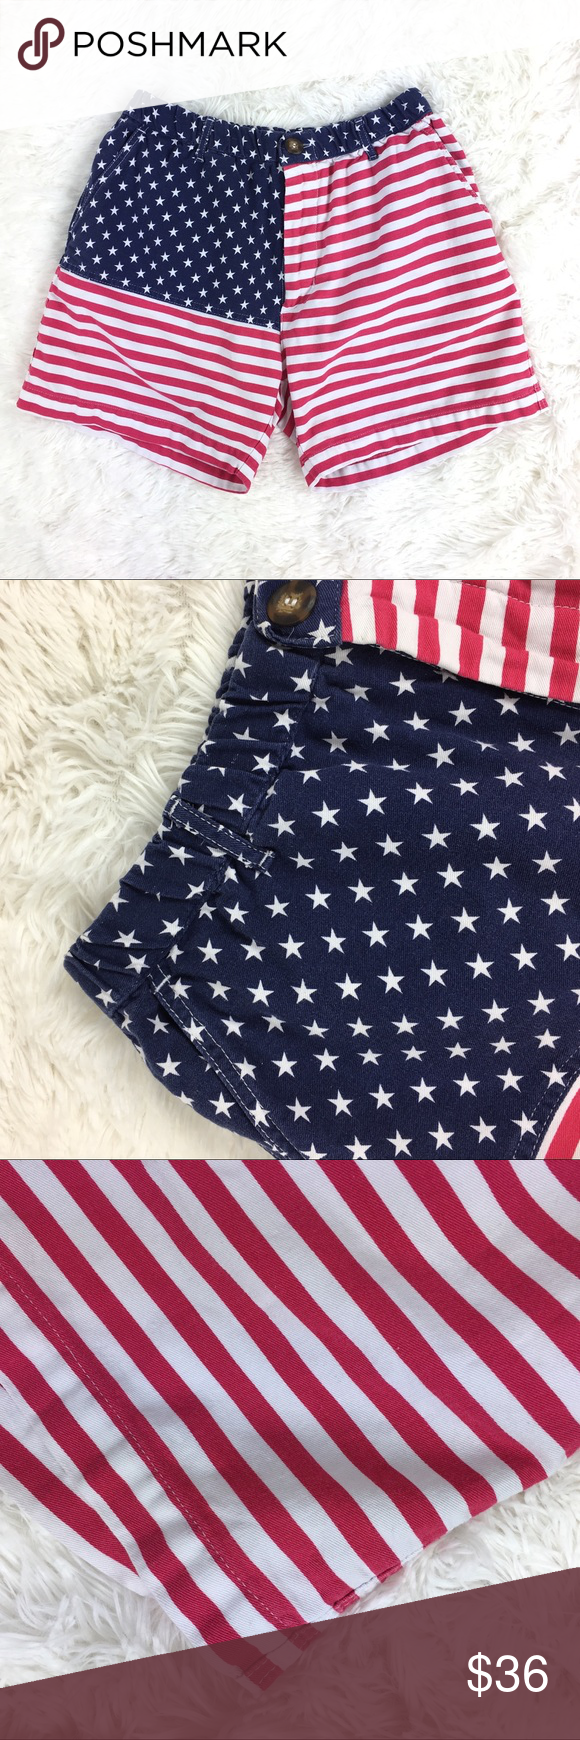 Chubbies American Flag Shorts Chubbies Made In Usa American Flag Casual Shorts Gently Used Front Pockets American Flag Shorts Clothes Design Chubbies Shorts